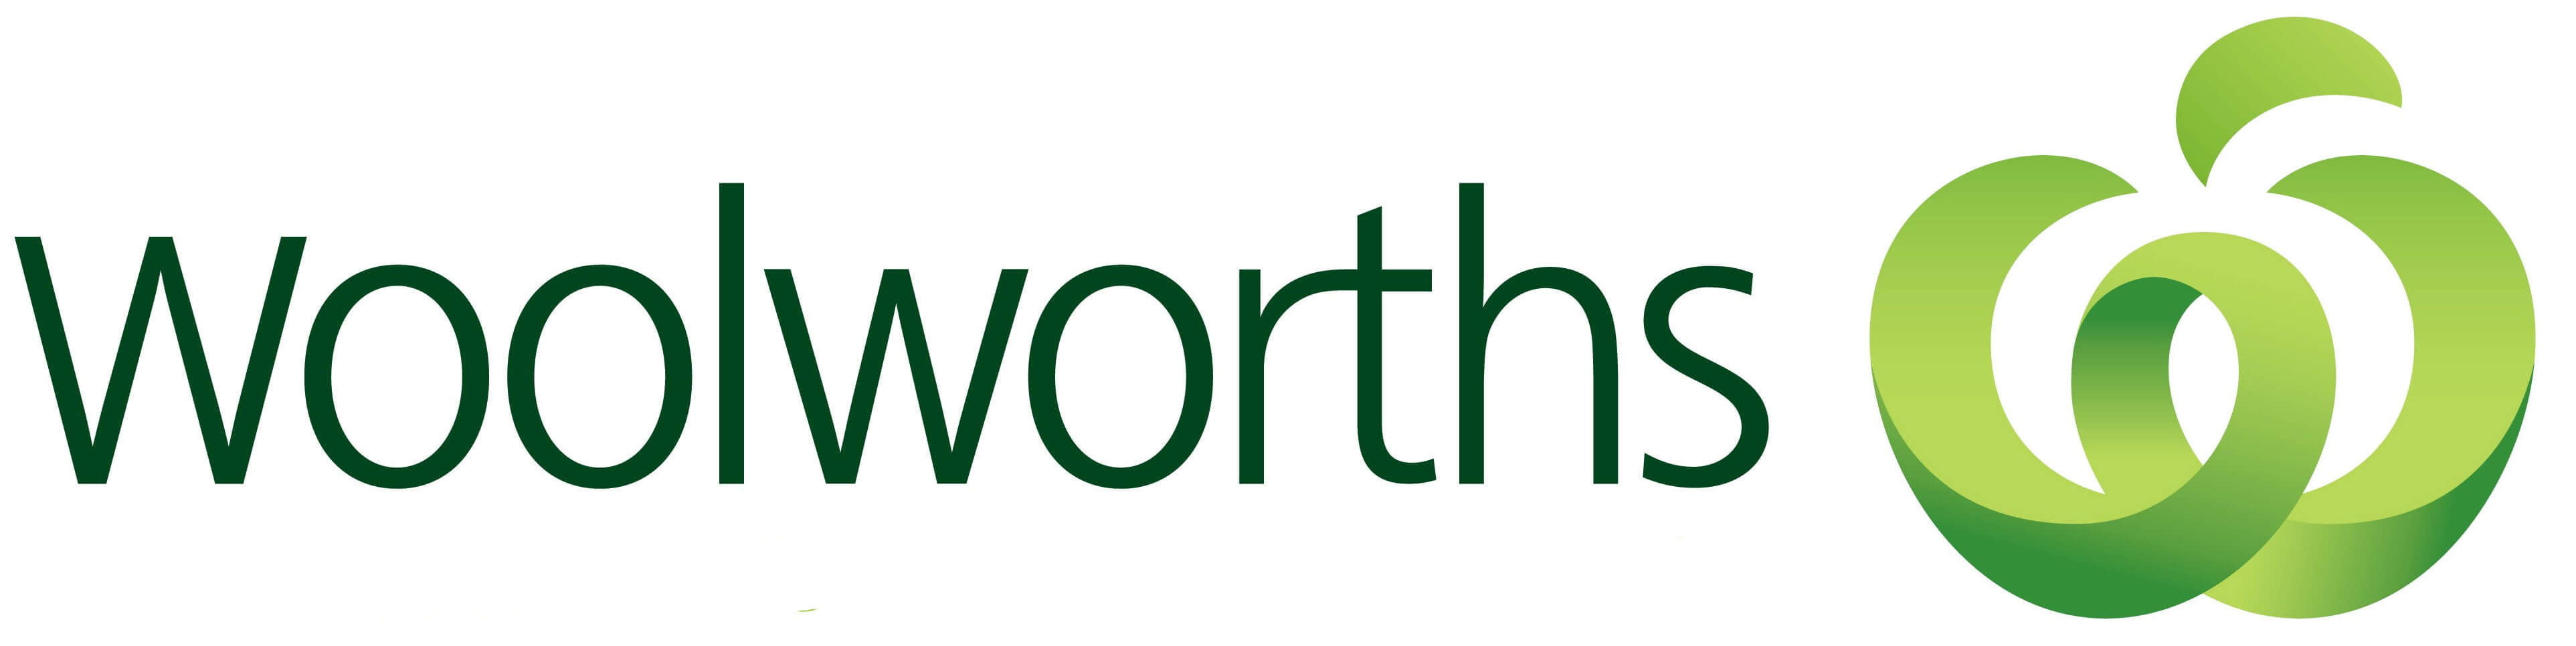 Woolworth Case Study